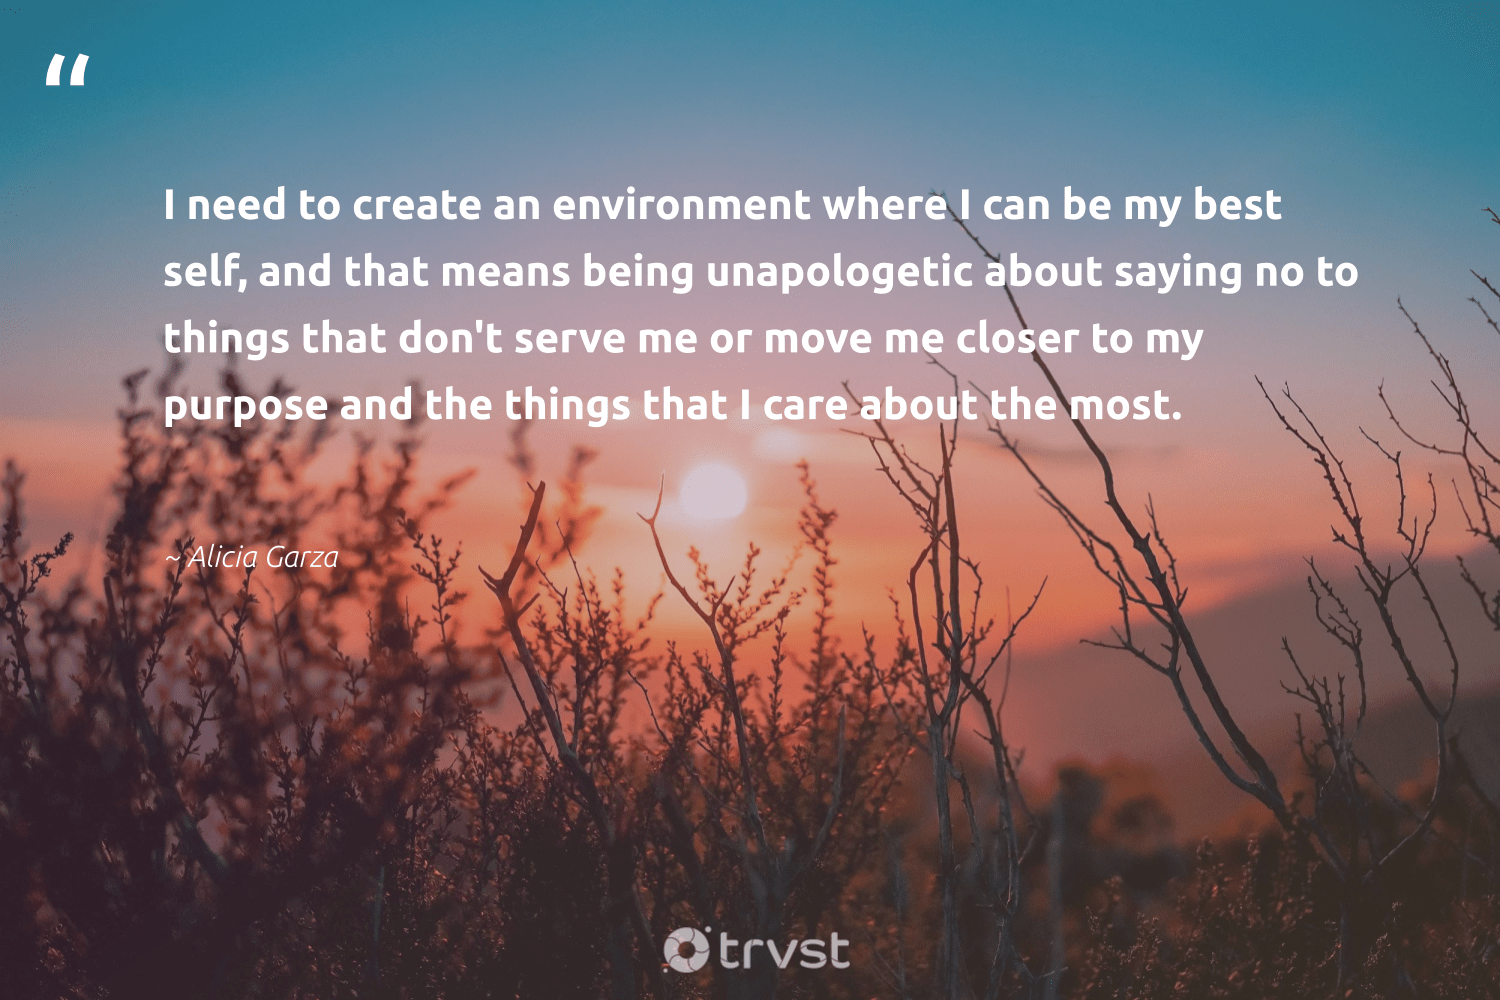 """""""I need to create an environment where I can be my best self, and that means being unapologetic about saying no to things that don't serve me or move me closer to my purpose and the things that I care about the most.""""  - Alicia Garza #trvst #quotes #environment #purpose #earth #begreat #sustainableliving #beinspired #conservation #mindset #sustainability #takeaction"""